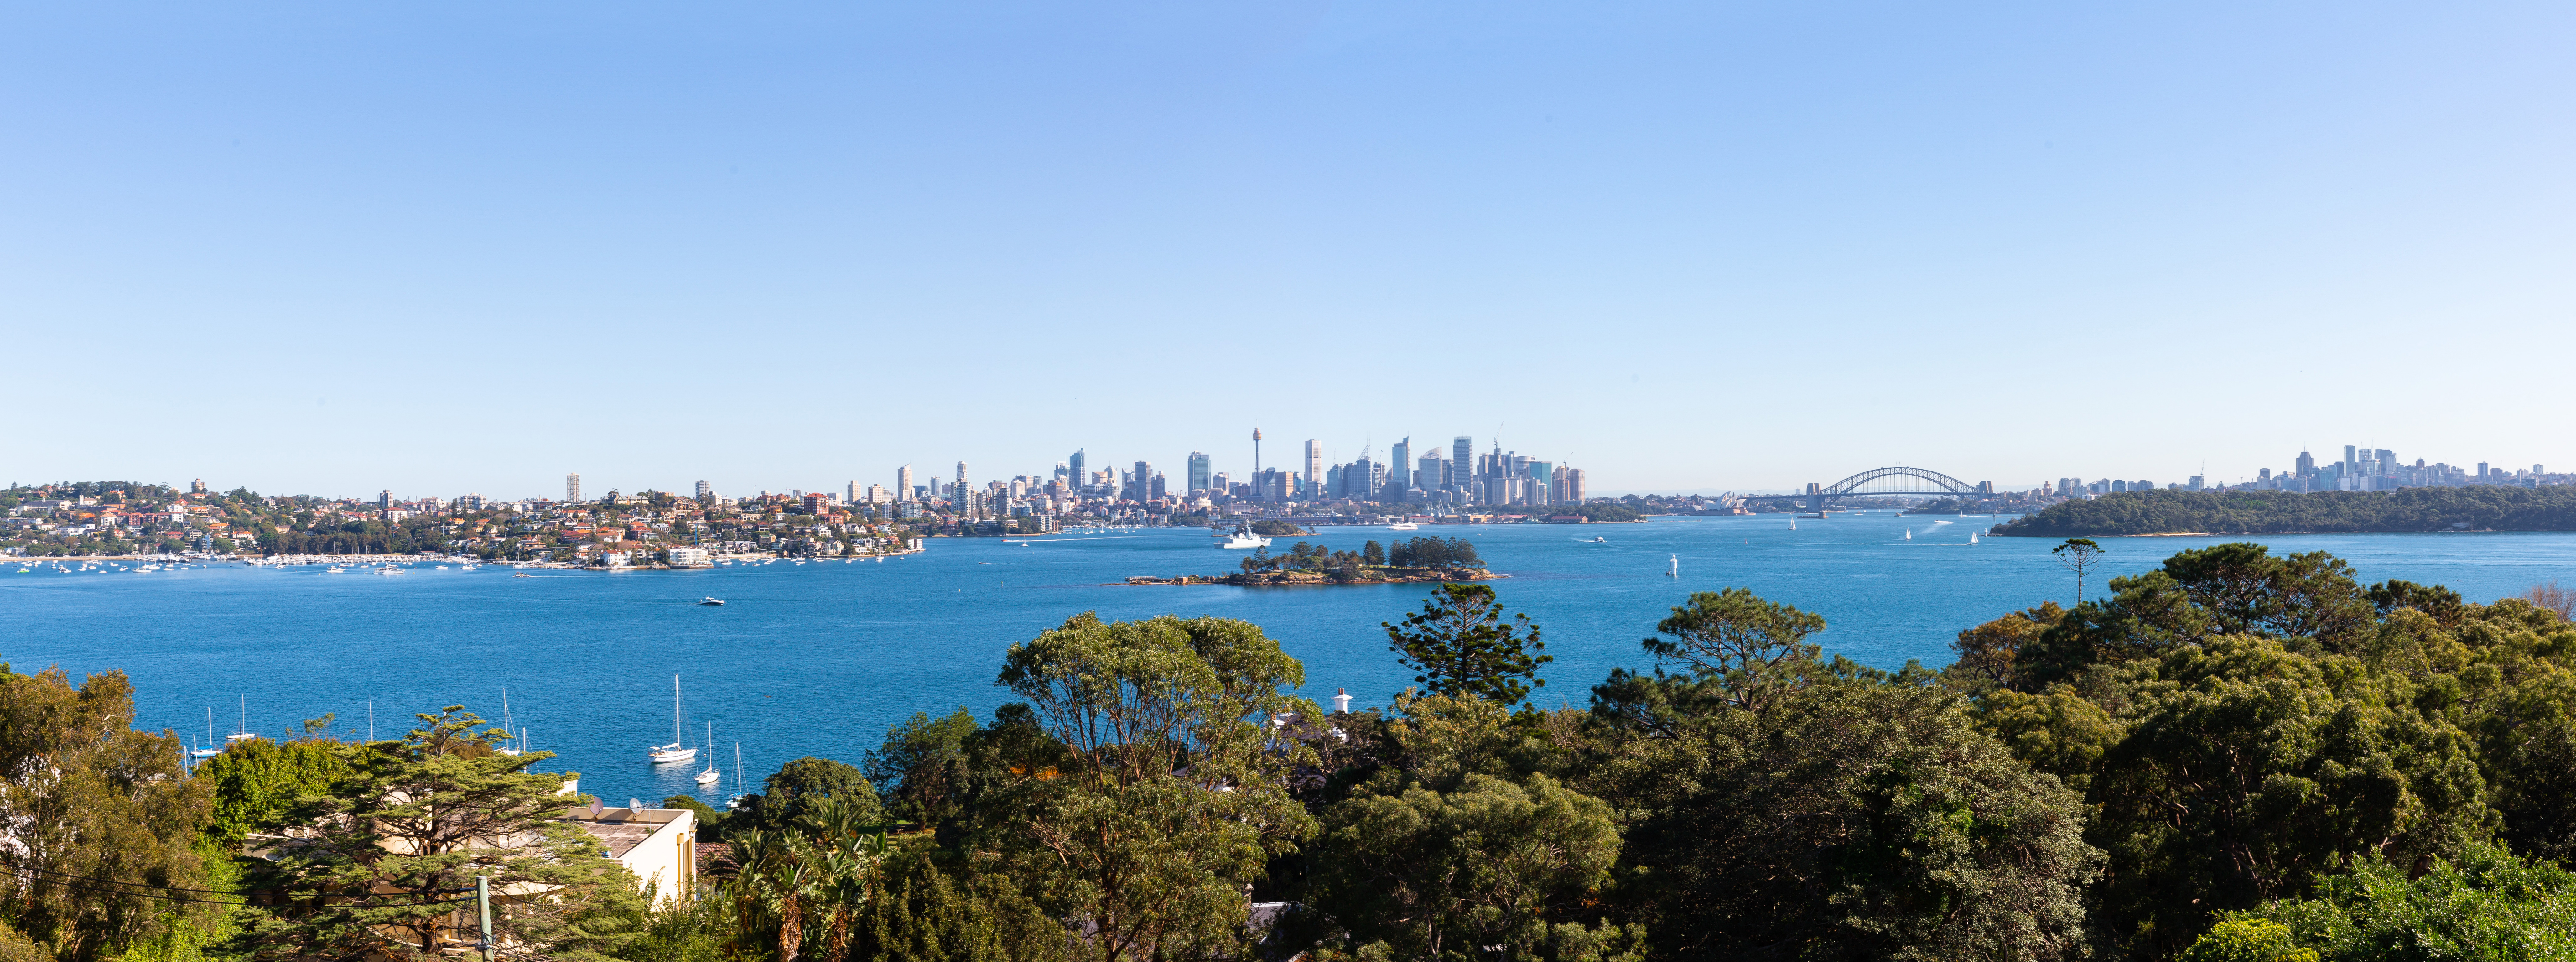 View from John Landerer's 38a Wentworth Rd Vaucluse, next to 40 Wentworth rd la mer